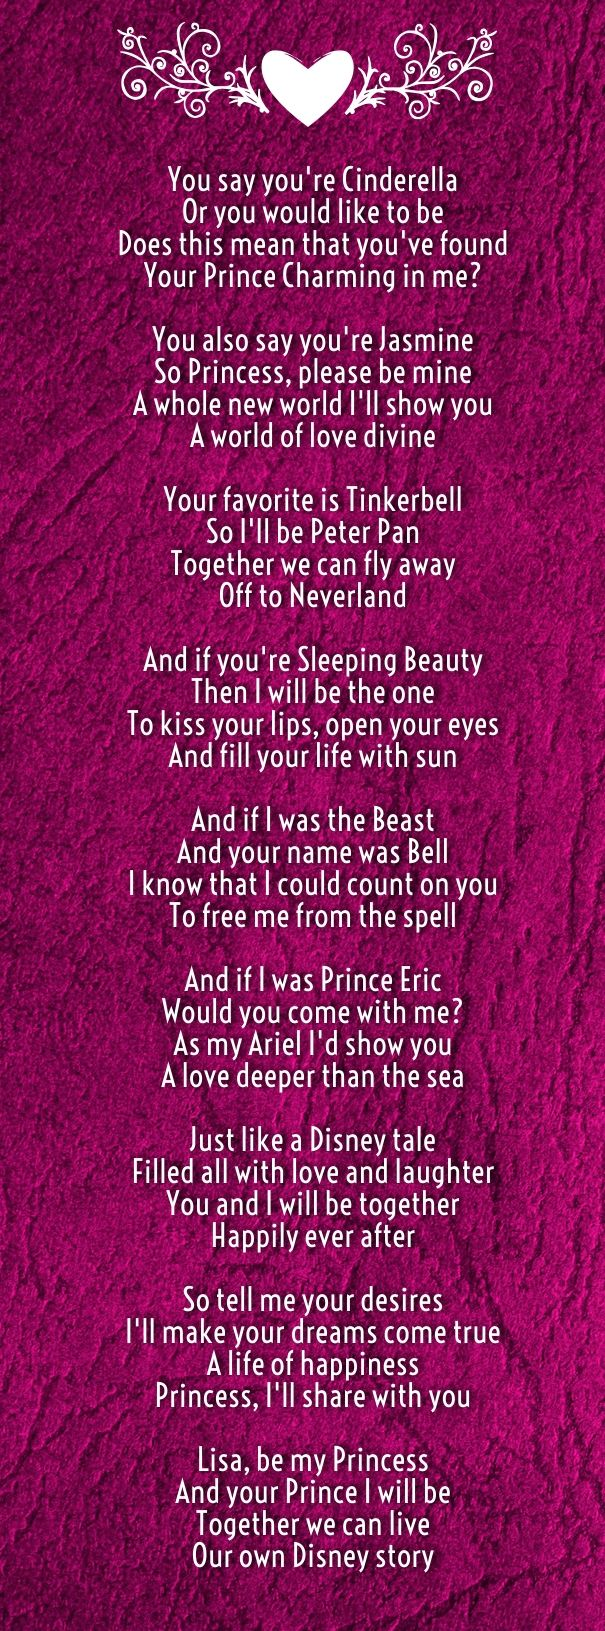 cinderella romantic love poems disney love quotes for her from the heart pinterest poem